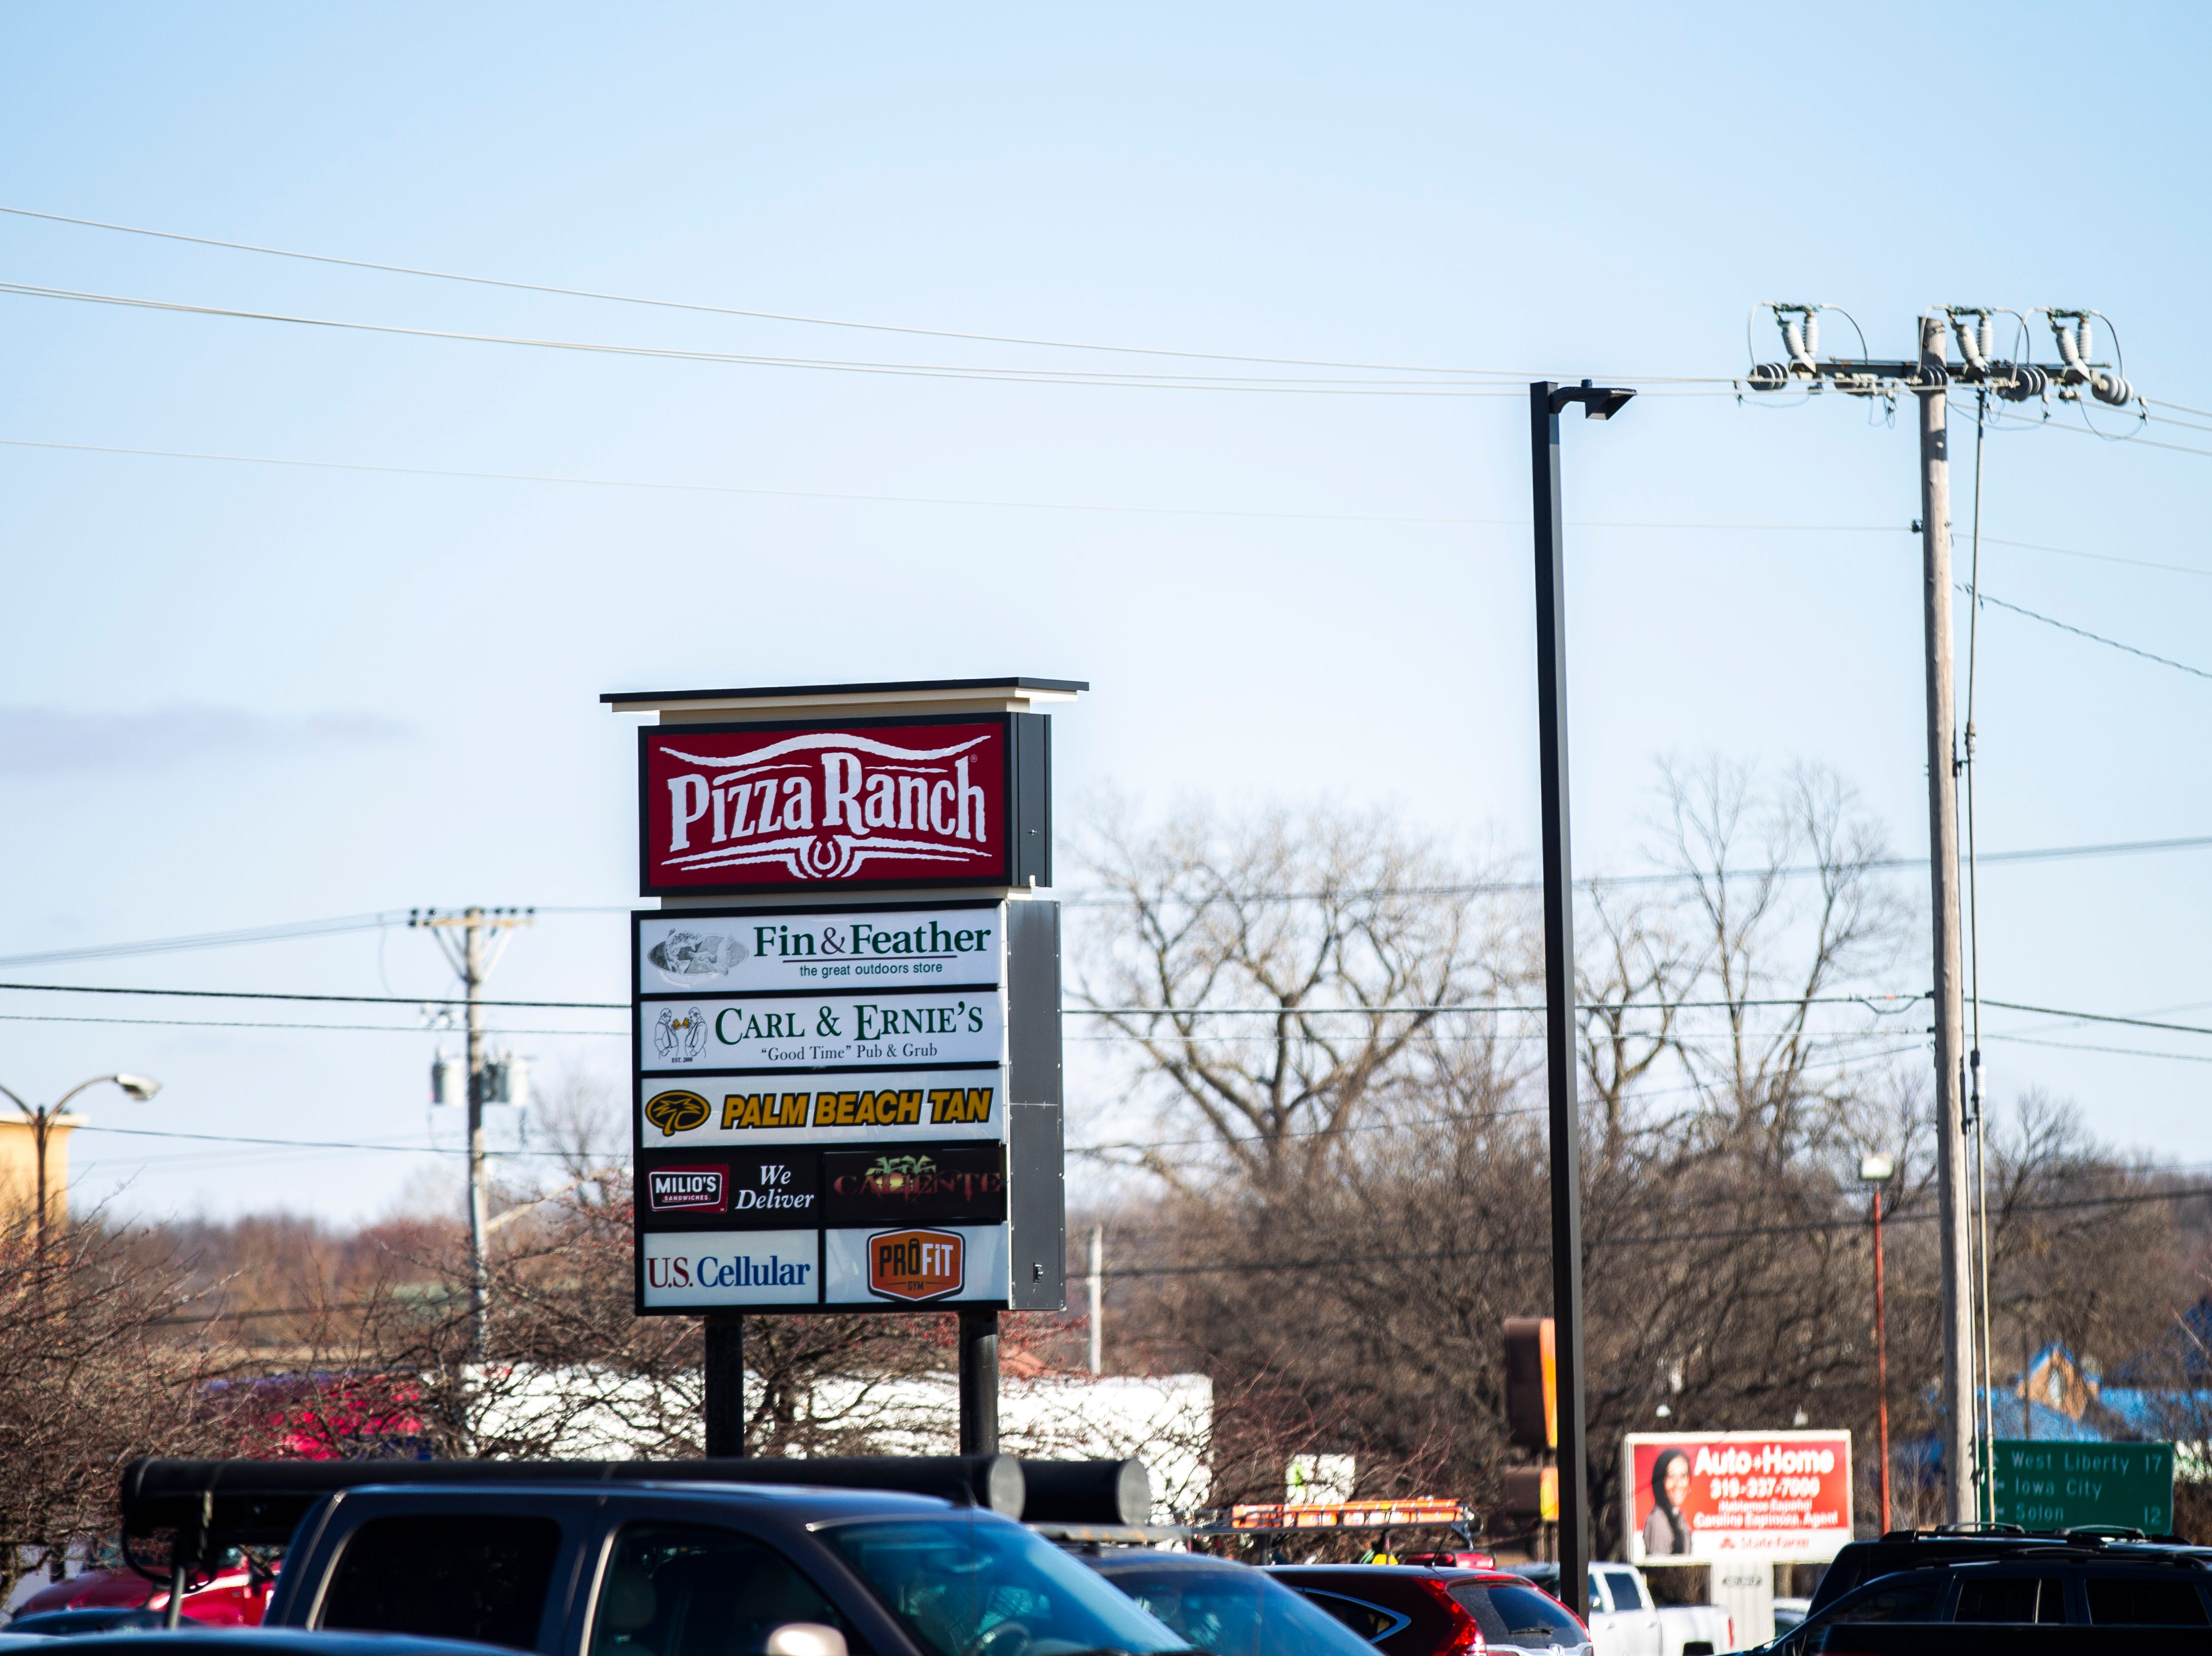 Businesses' logos are displayed on a sign in the parking lot during a soft opening event on Thursday, Dec. 6, 2018, at Pizza Ranch on Highway 1 West in Iowa City.